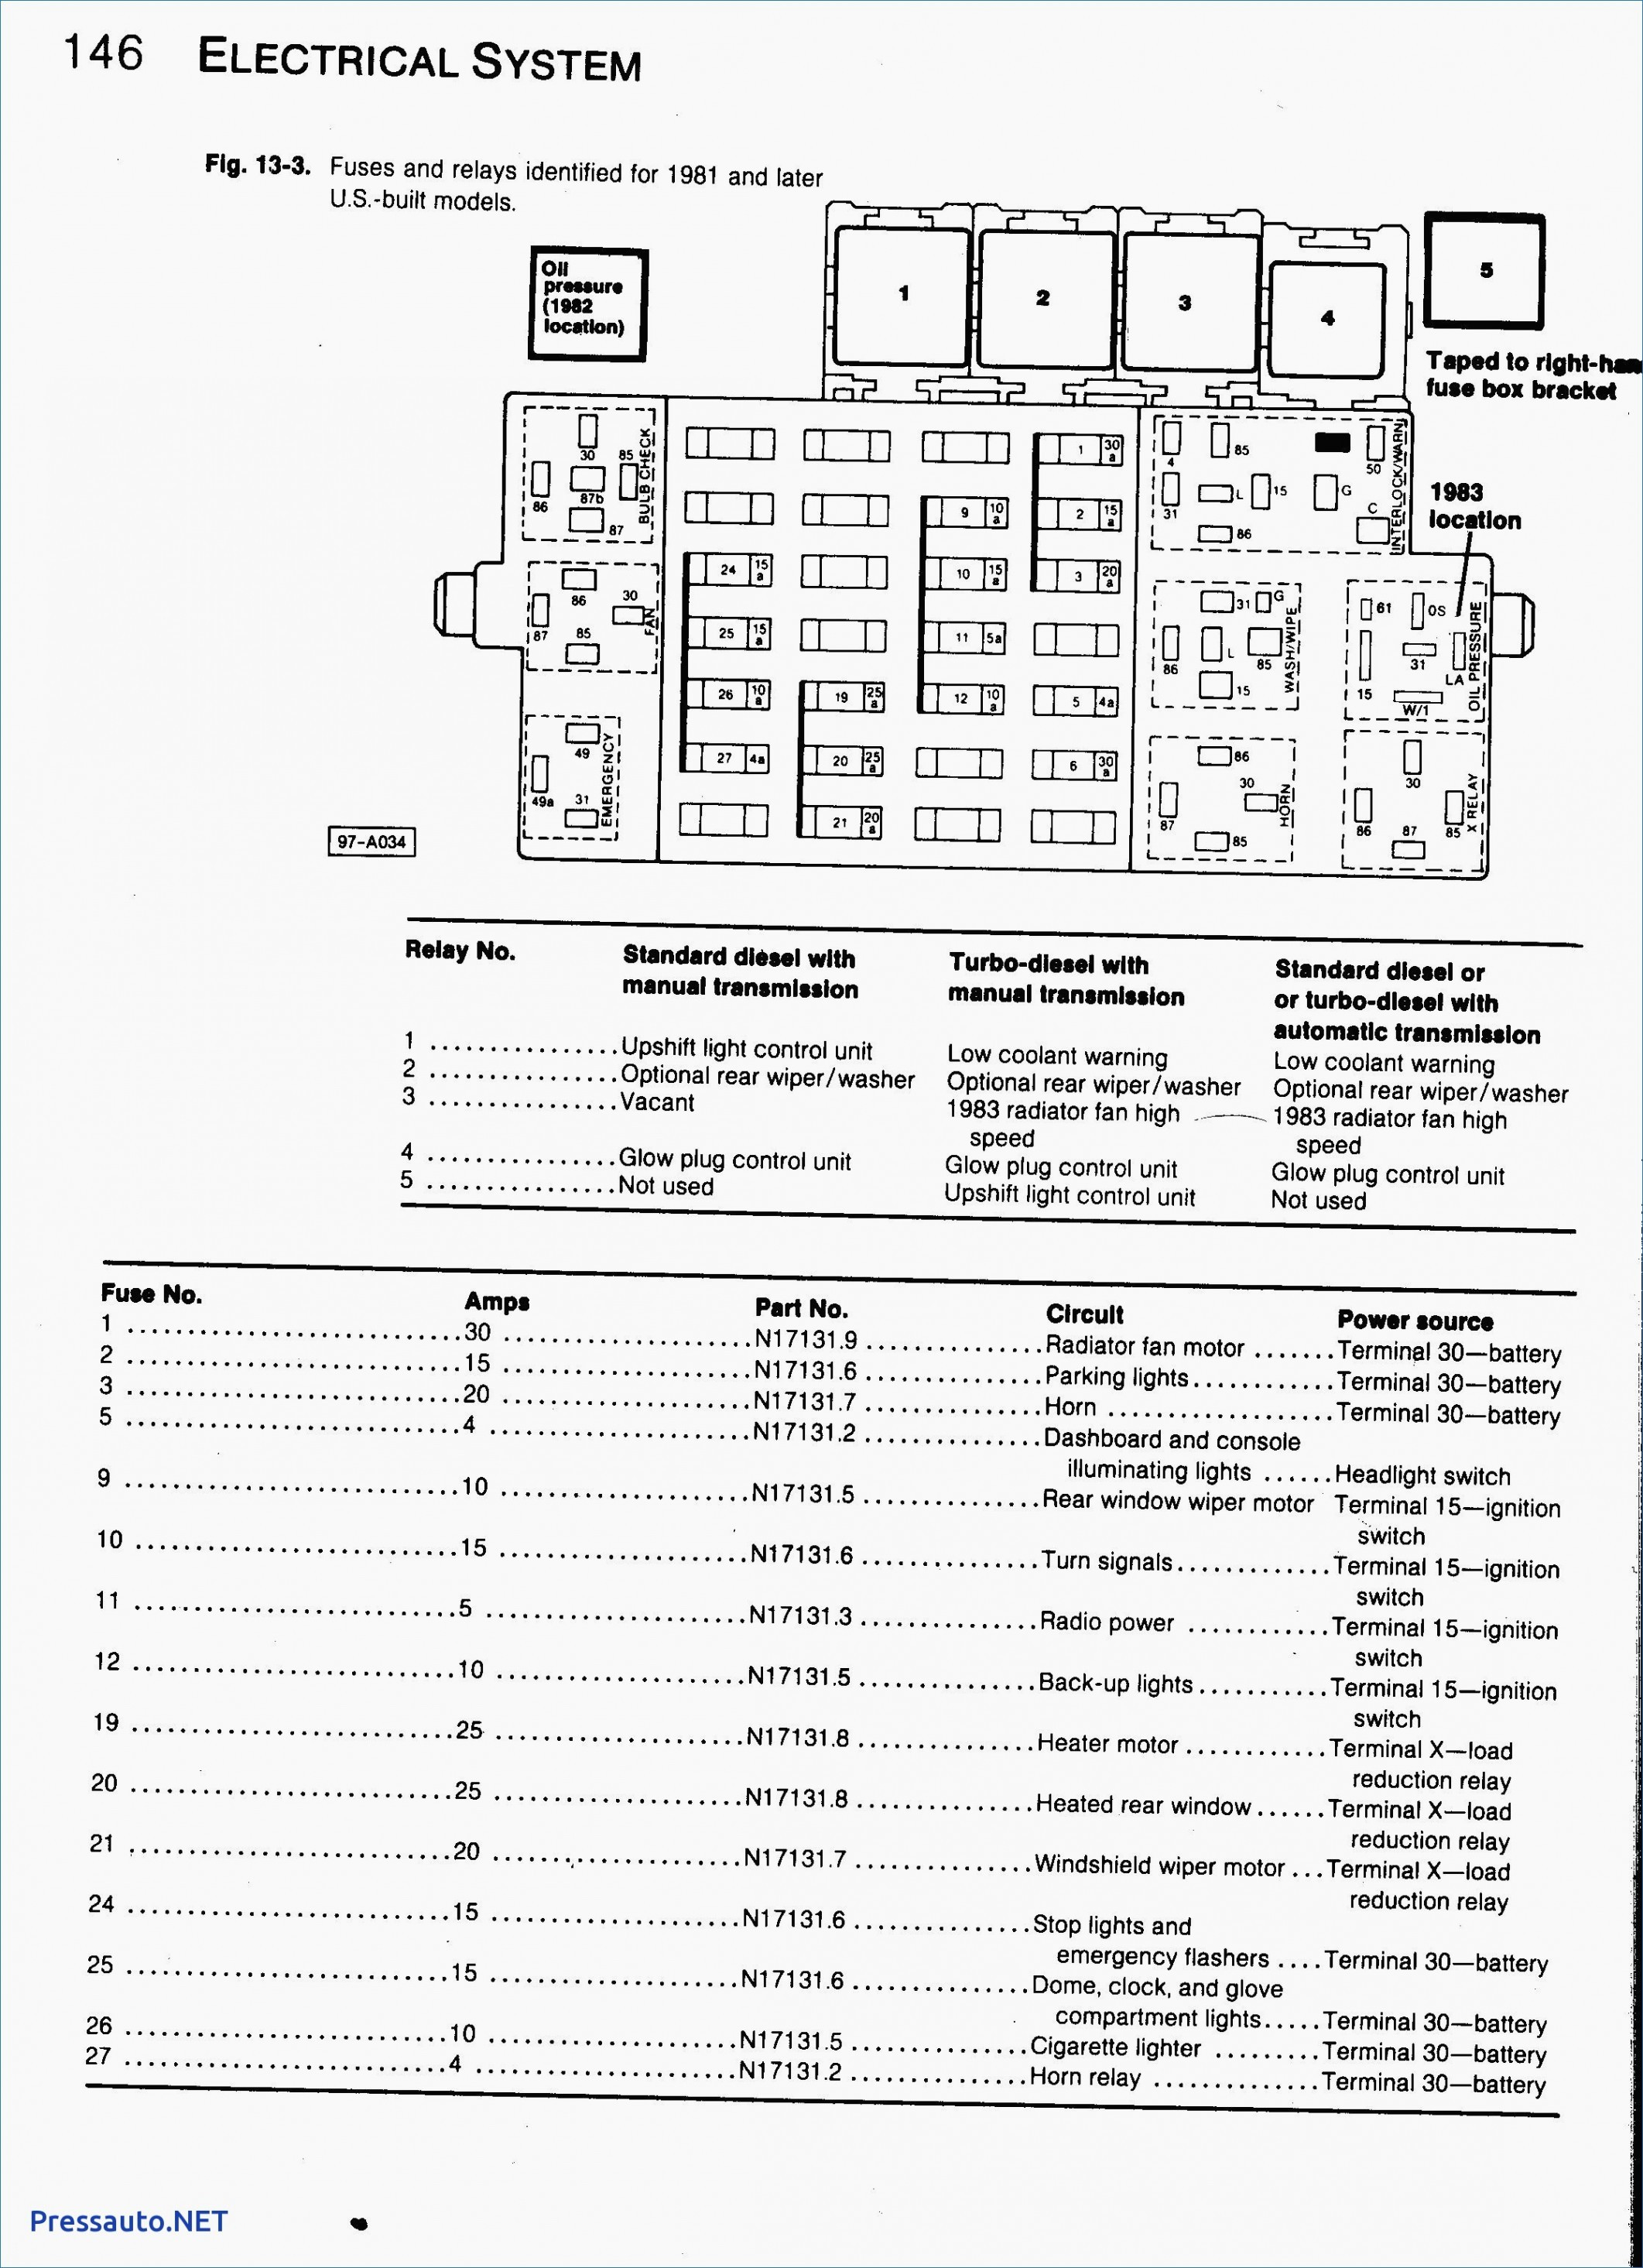 Amazing 96 Jetta 2 0L Ignition Wiring Diagram 96 Get Free Image About Wiring Wiring Cloud Peadfoxcilixyz